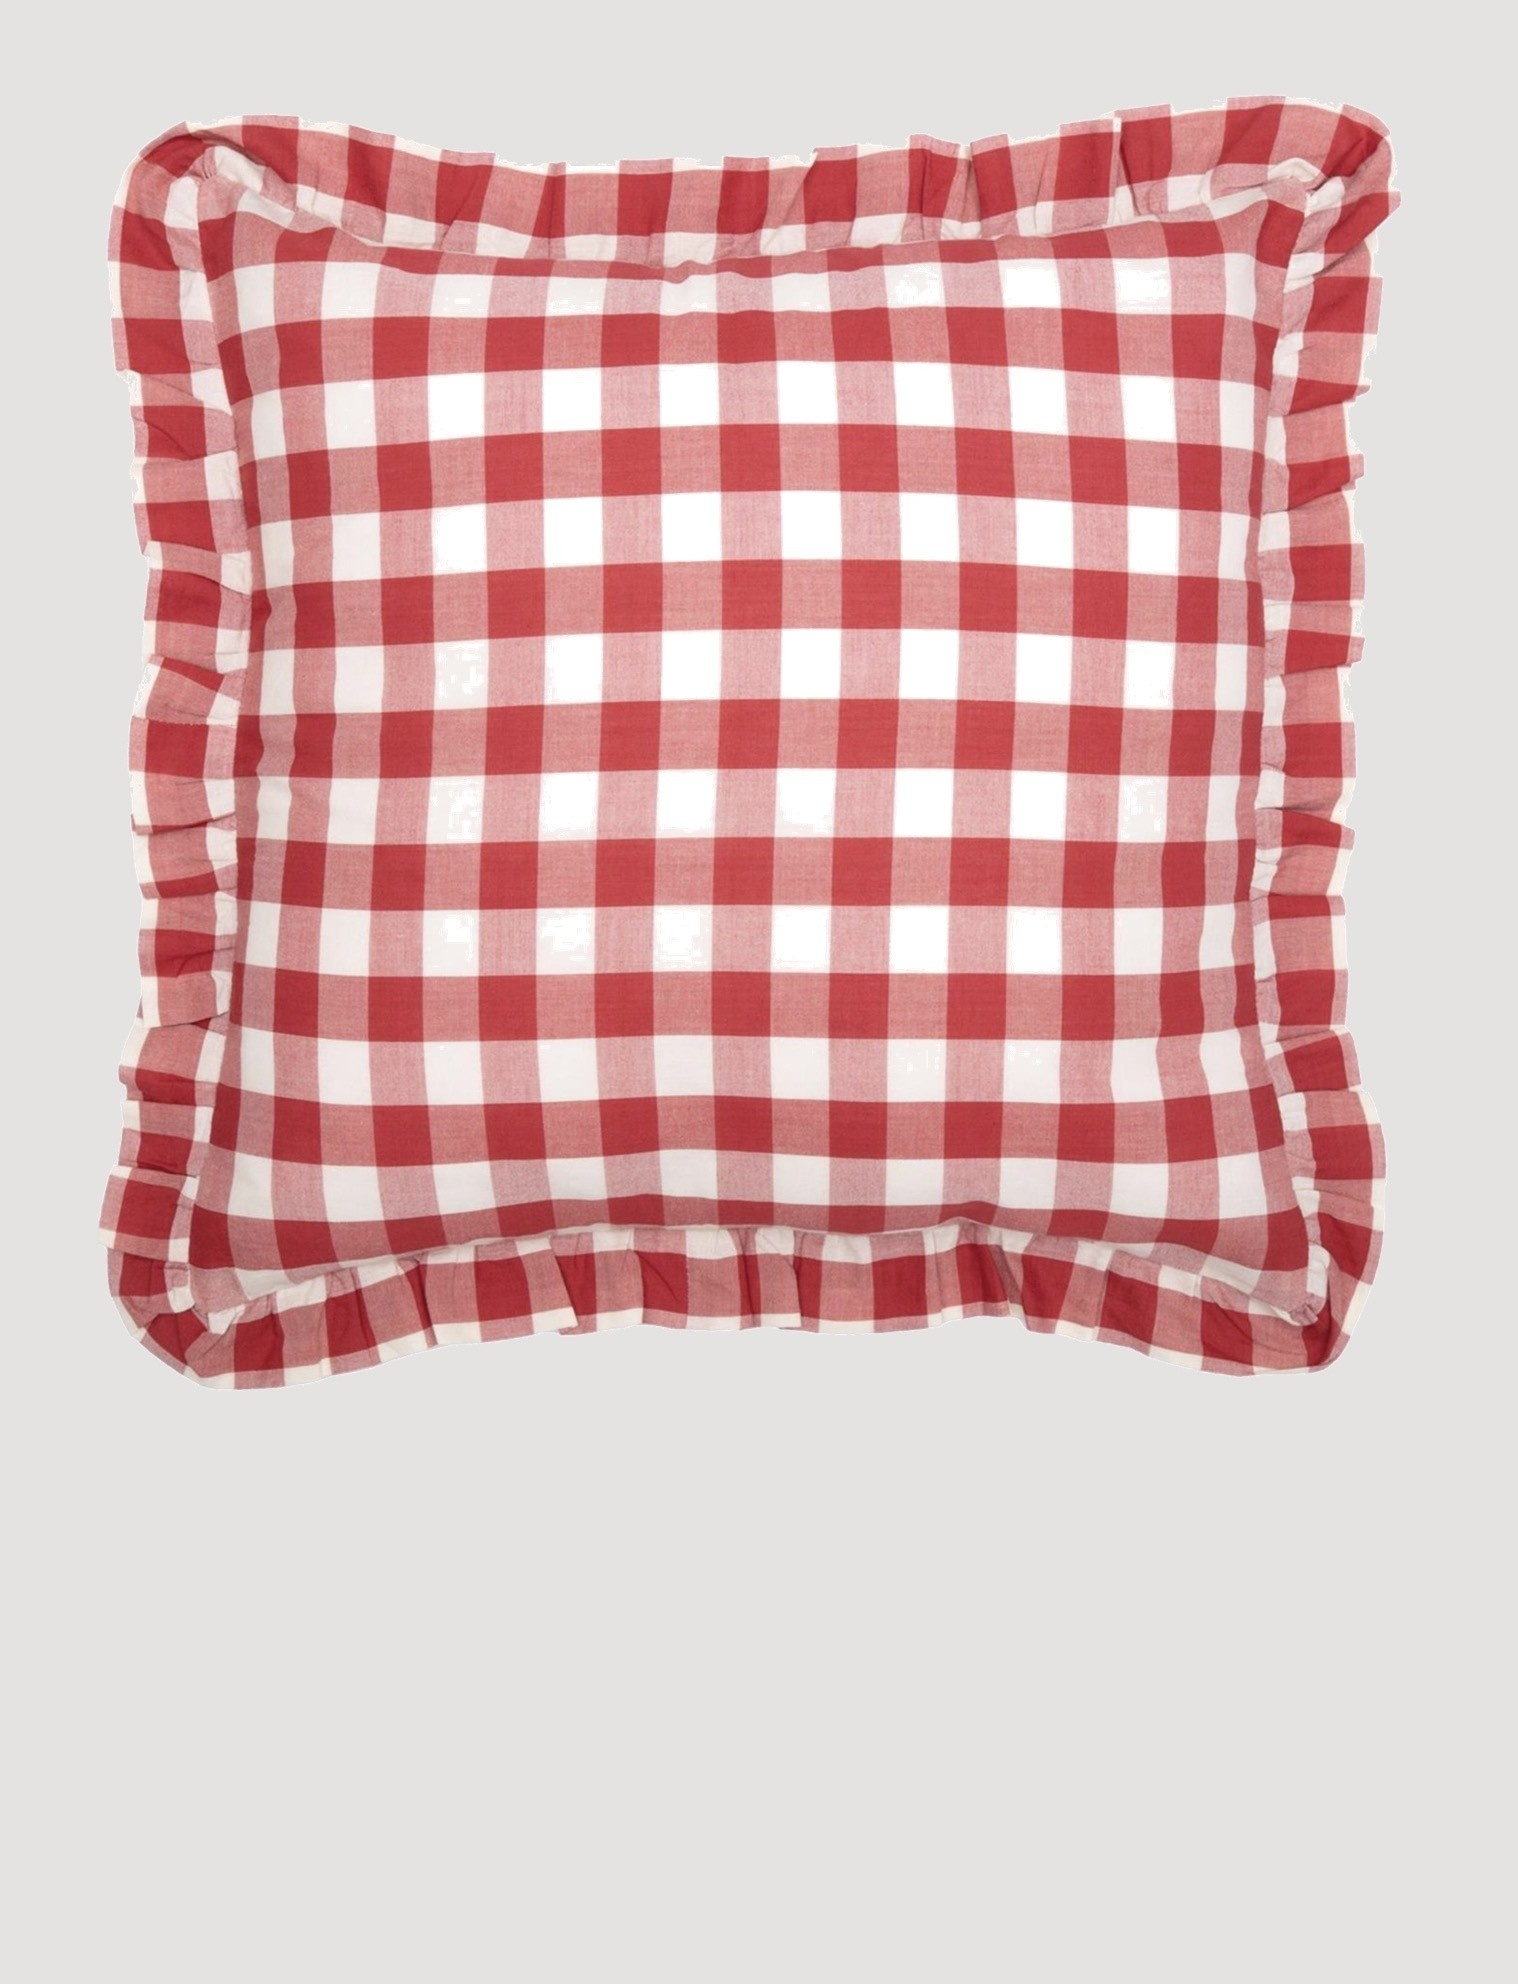 VHC Brands Annie Buffalo Red Check Ruffled Fabric Pillow 18x18